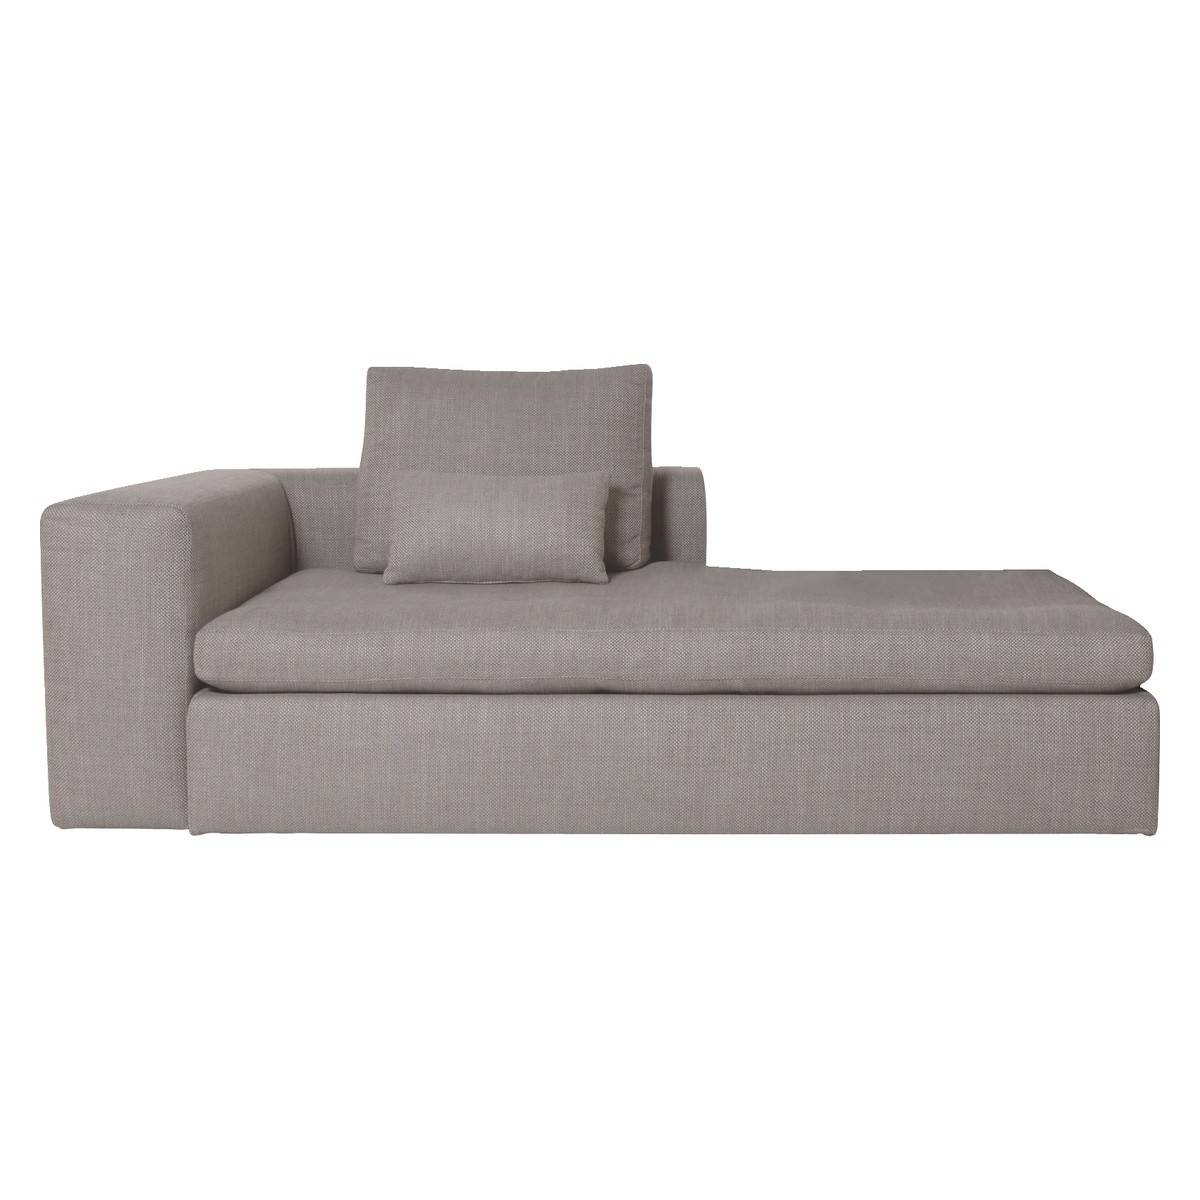 Sofas: Ikea Loveseat | Chaise Sofa Bed | Memory Foam Sleeper Sofa throughout Ikea Loveseat Sleeper Sofas (Image 24 of 30)